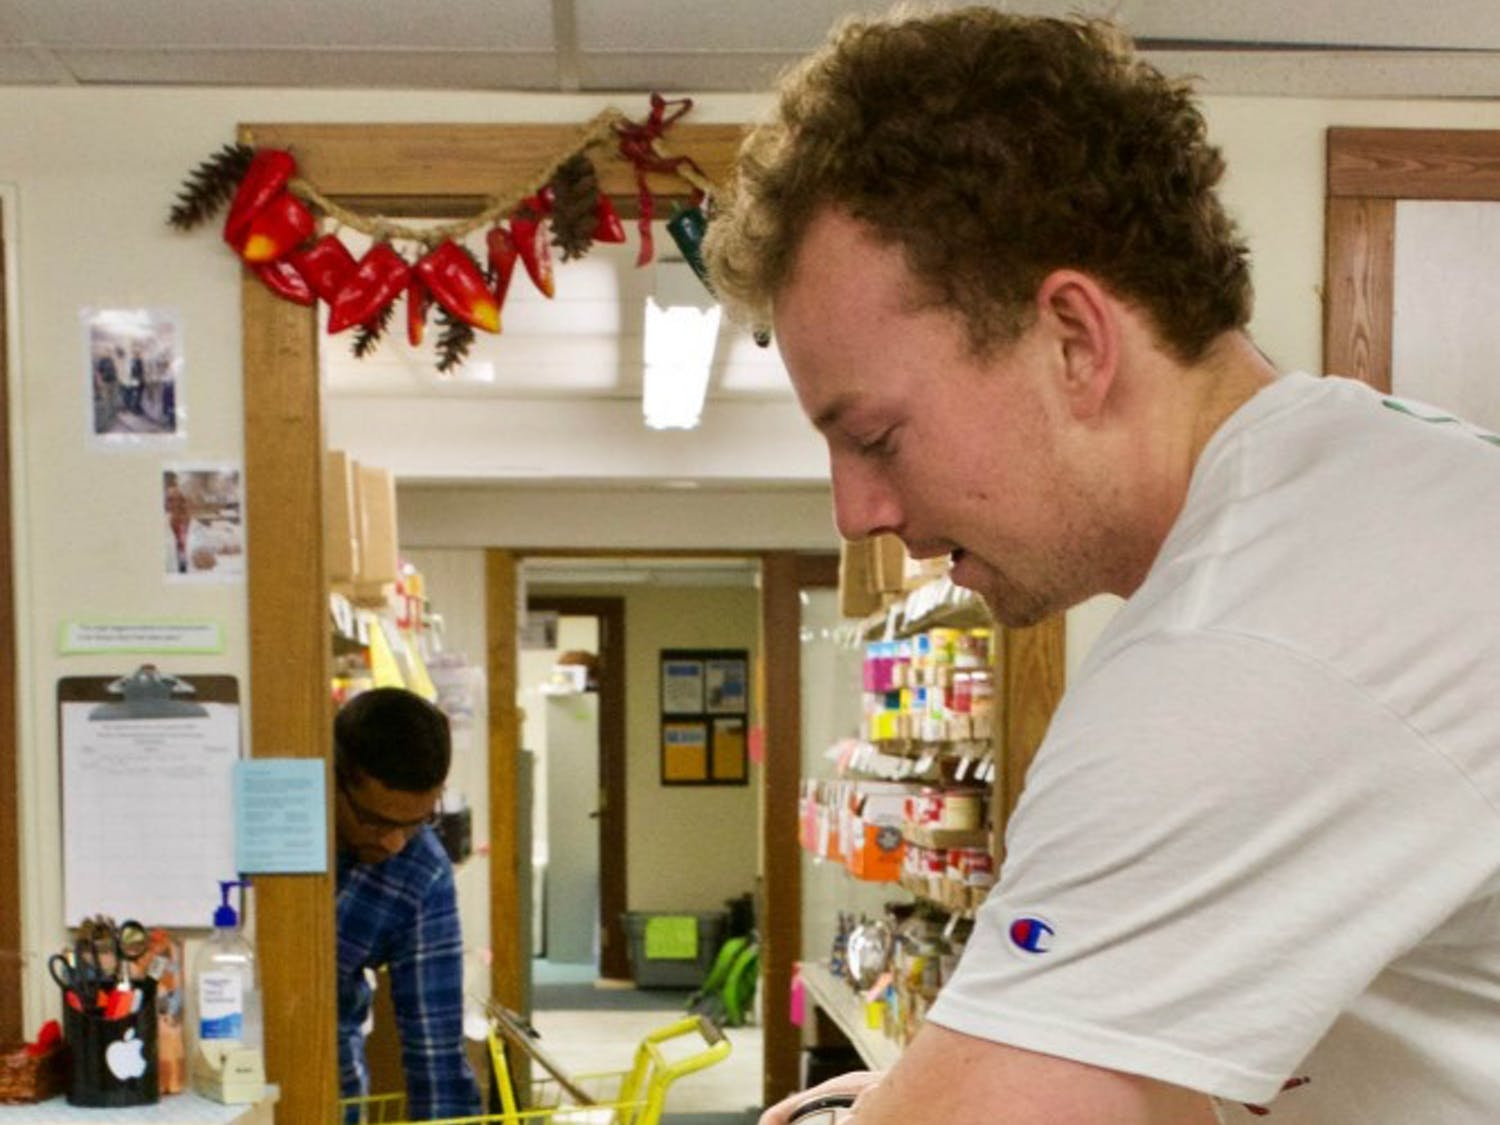 """Warner Lamar, sophomore majoring in computer science, volunteers at the Inter-Faith Food Pantry on Tuesday, Oct. 2, 2018. He volunteers at the Inter-Faith Food Pantry, and has also done work with the Community Empowerment Fund. Lamar is in the process of starting a project called """"Focus on Franklin"""" which raises money for homelessness diversion."""